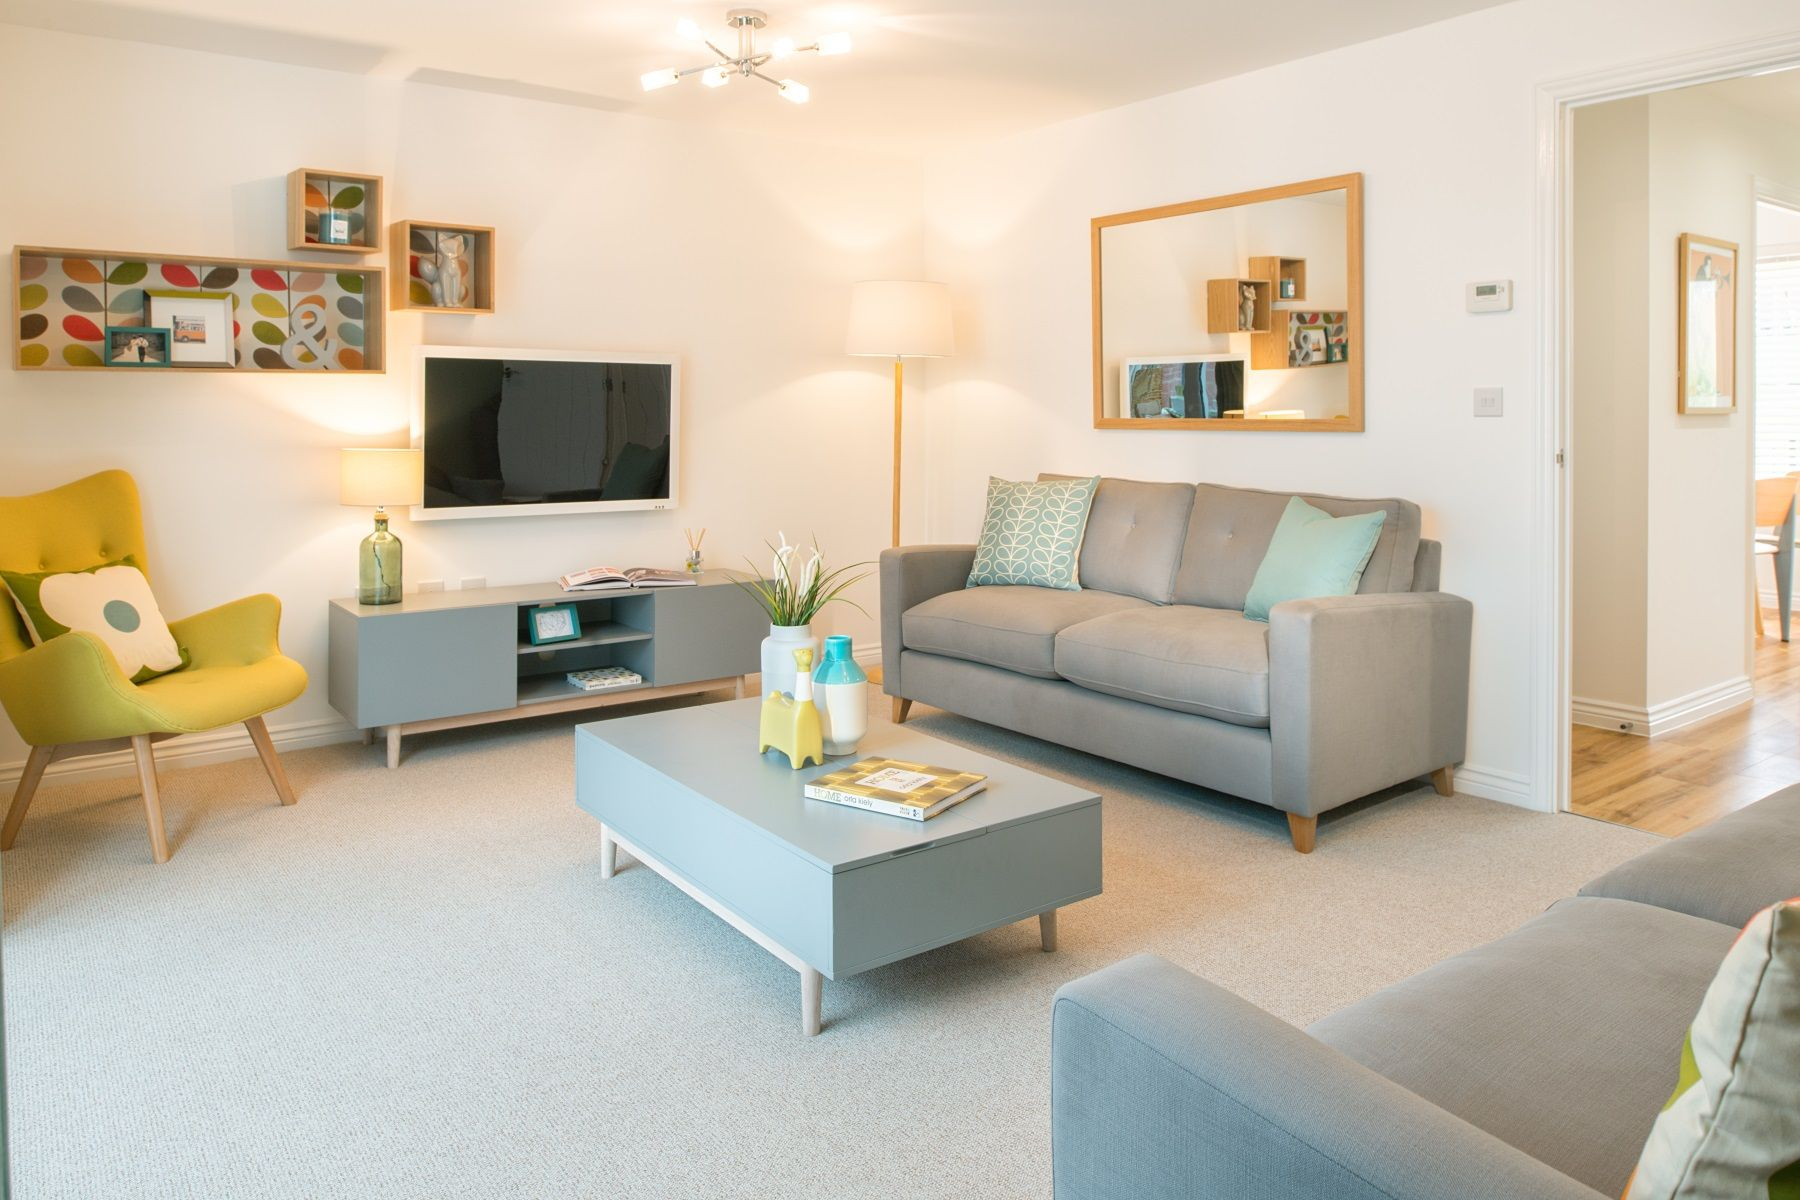 TW Exeter - Chy Ryn Parc - Flatford example living room 2